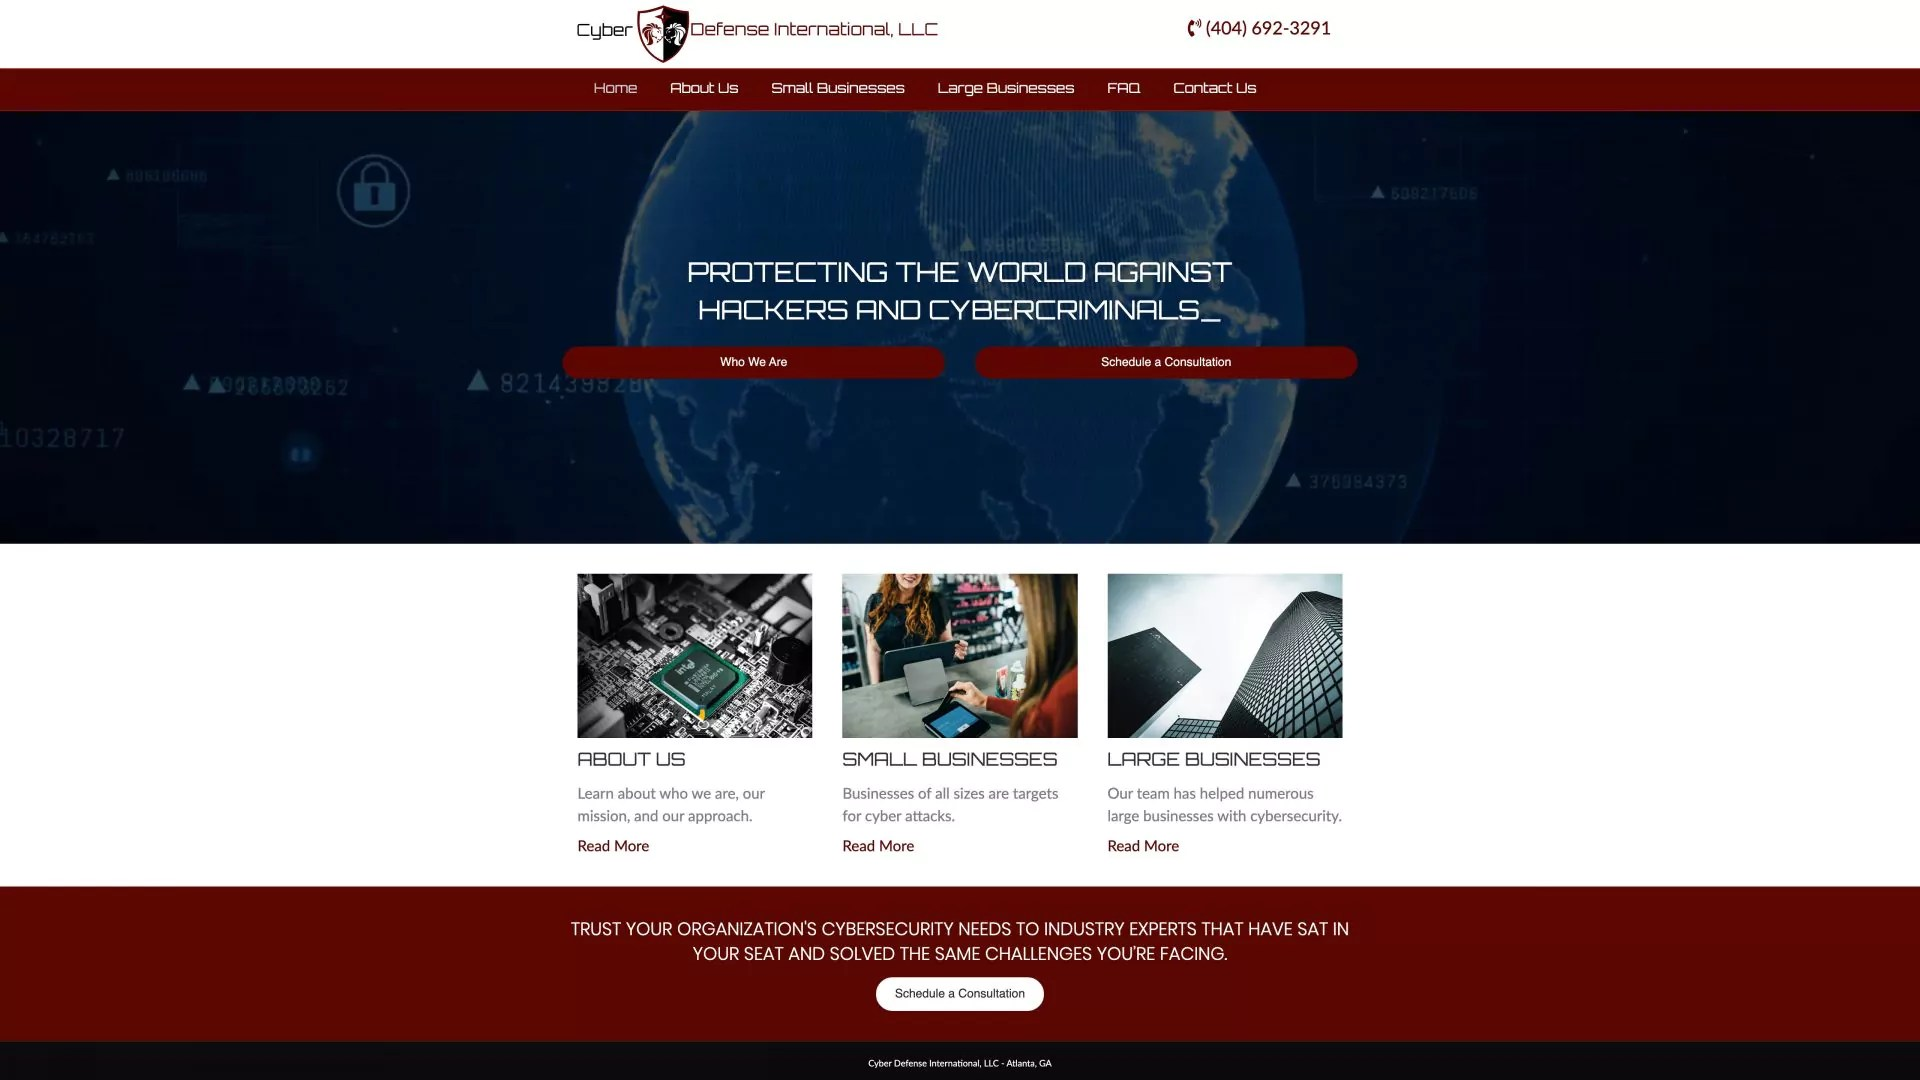 cyber-defense-atlanta-desktop-web-design-1